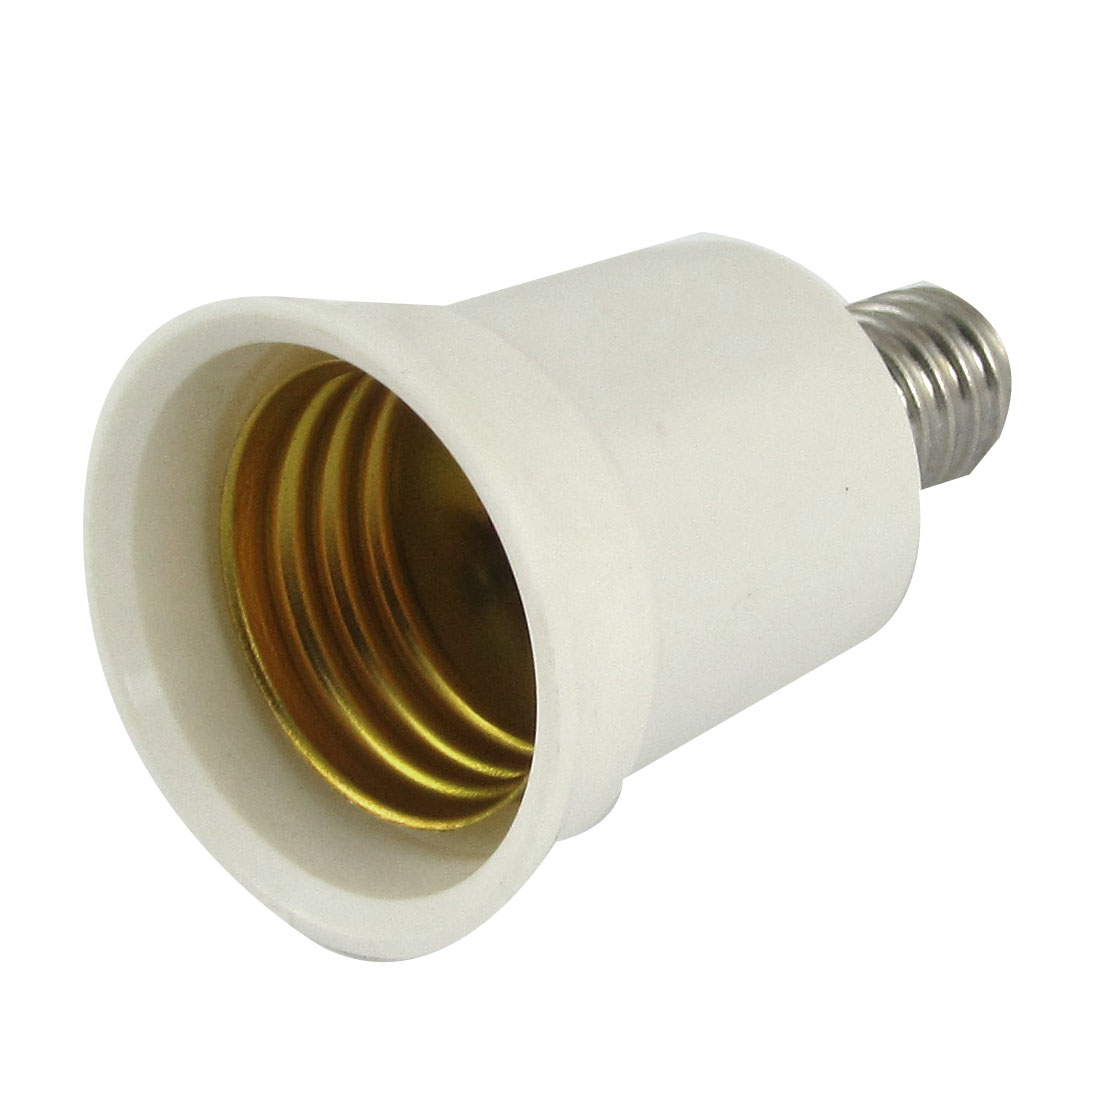 E27 to E14 Light Lamp Bulb Socket Adapter Convertor White